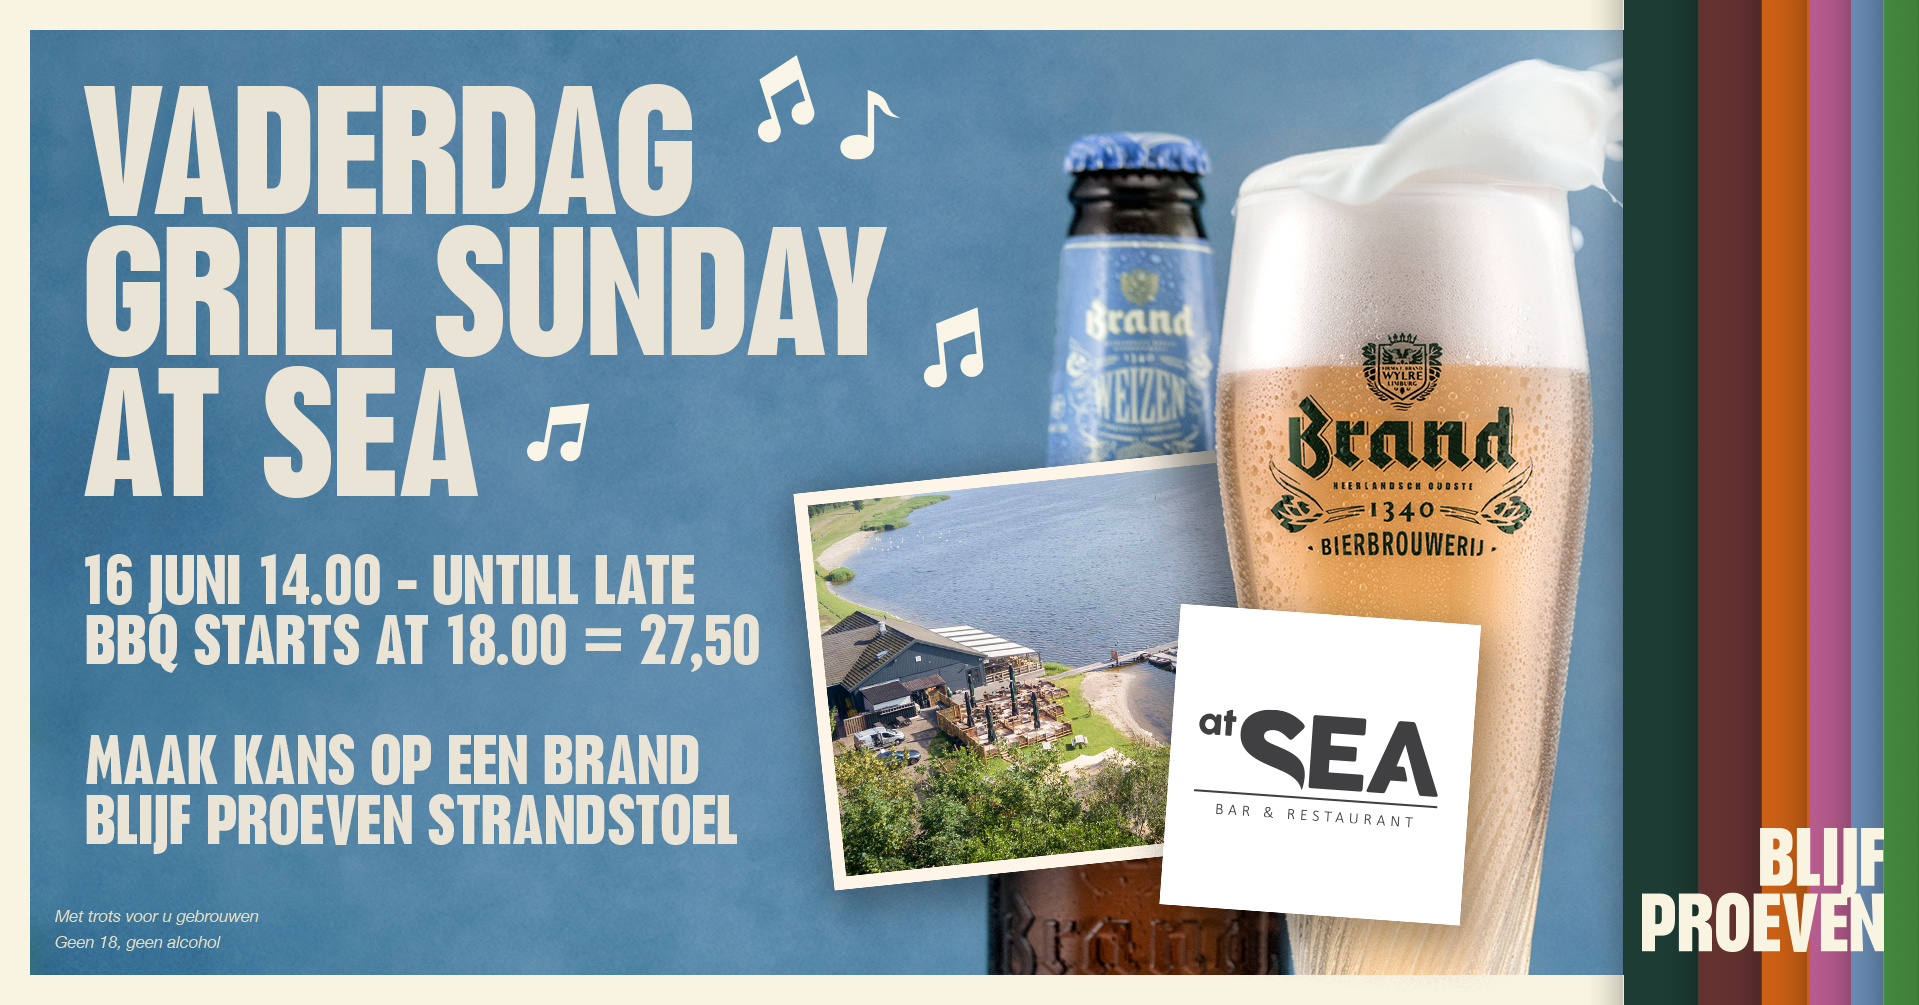 #Brand New Grill Sunday - Vaderdag